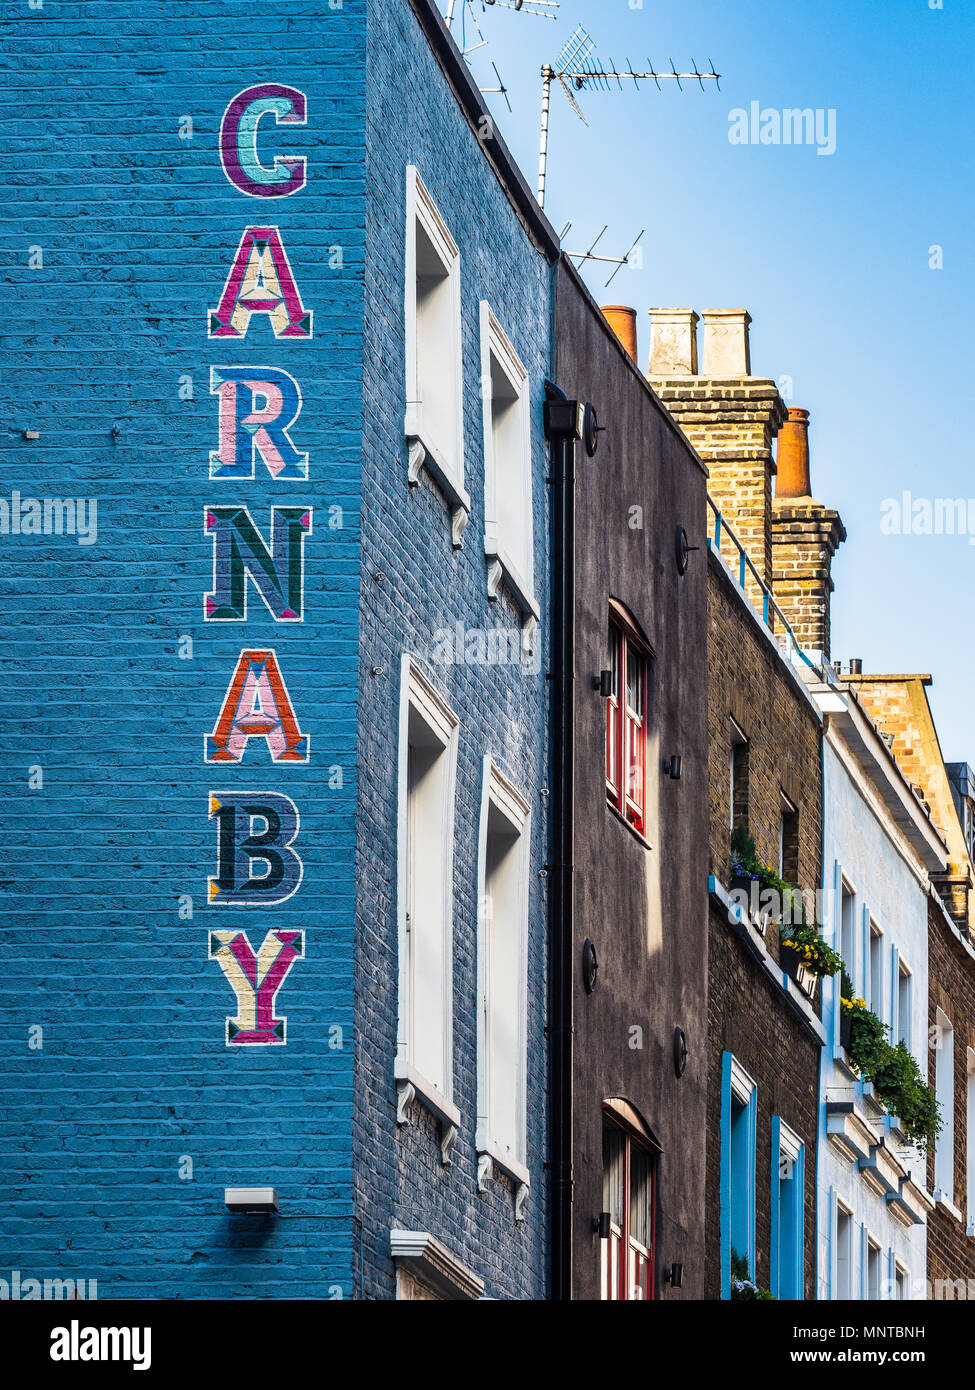 Carnaby Street London - painted sign on the side of a building in London's Soho district, Carnaby is famous as the heart of swinging London in the 60s - Stock Image